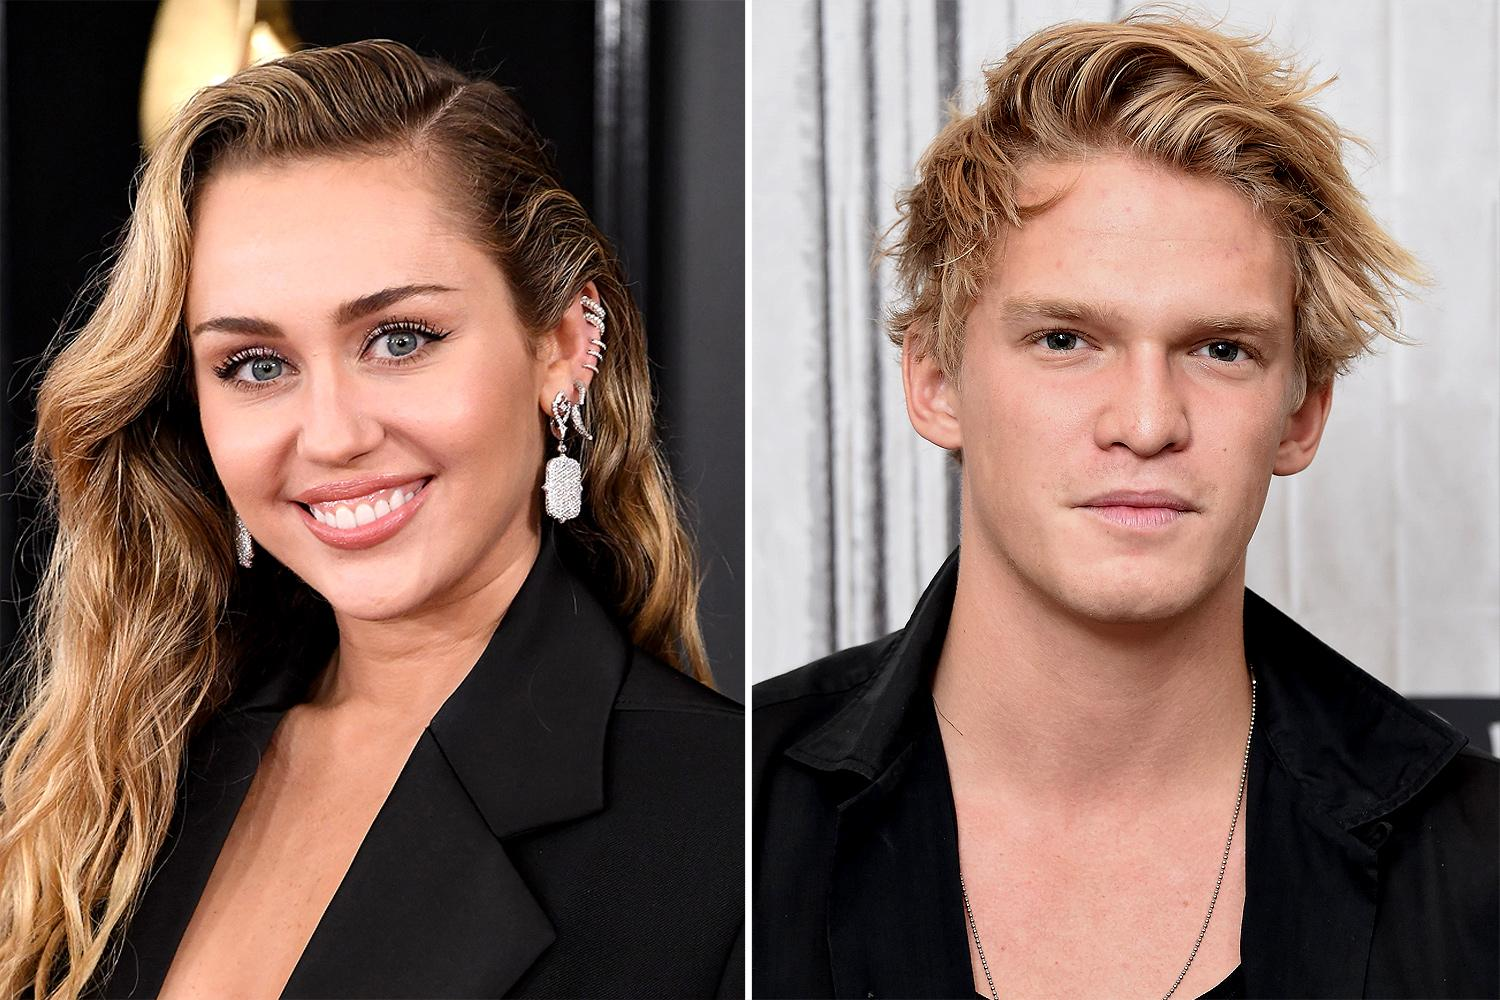 Miley Cyrus And Cody Simpson Have A 'Deep Connection' - She's In For The 'Long-Run!'